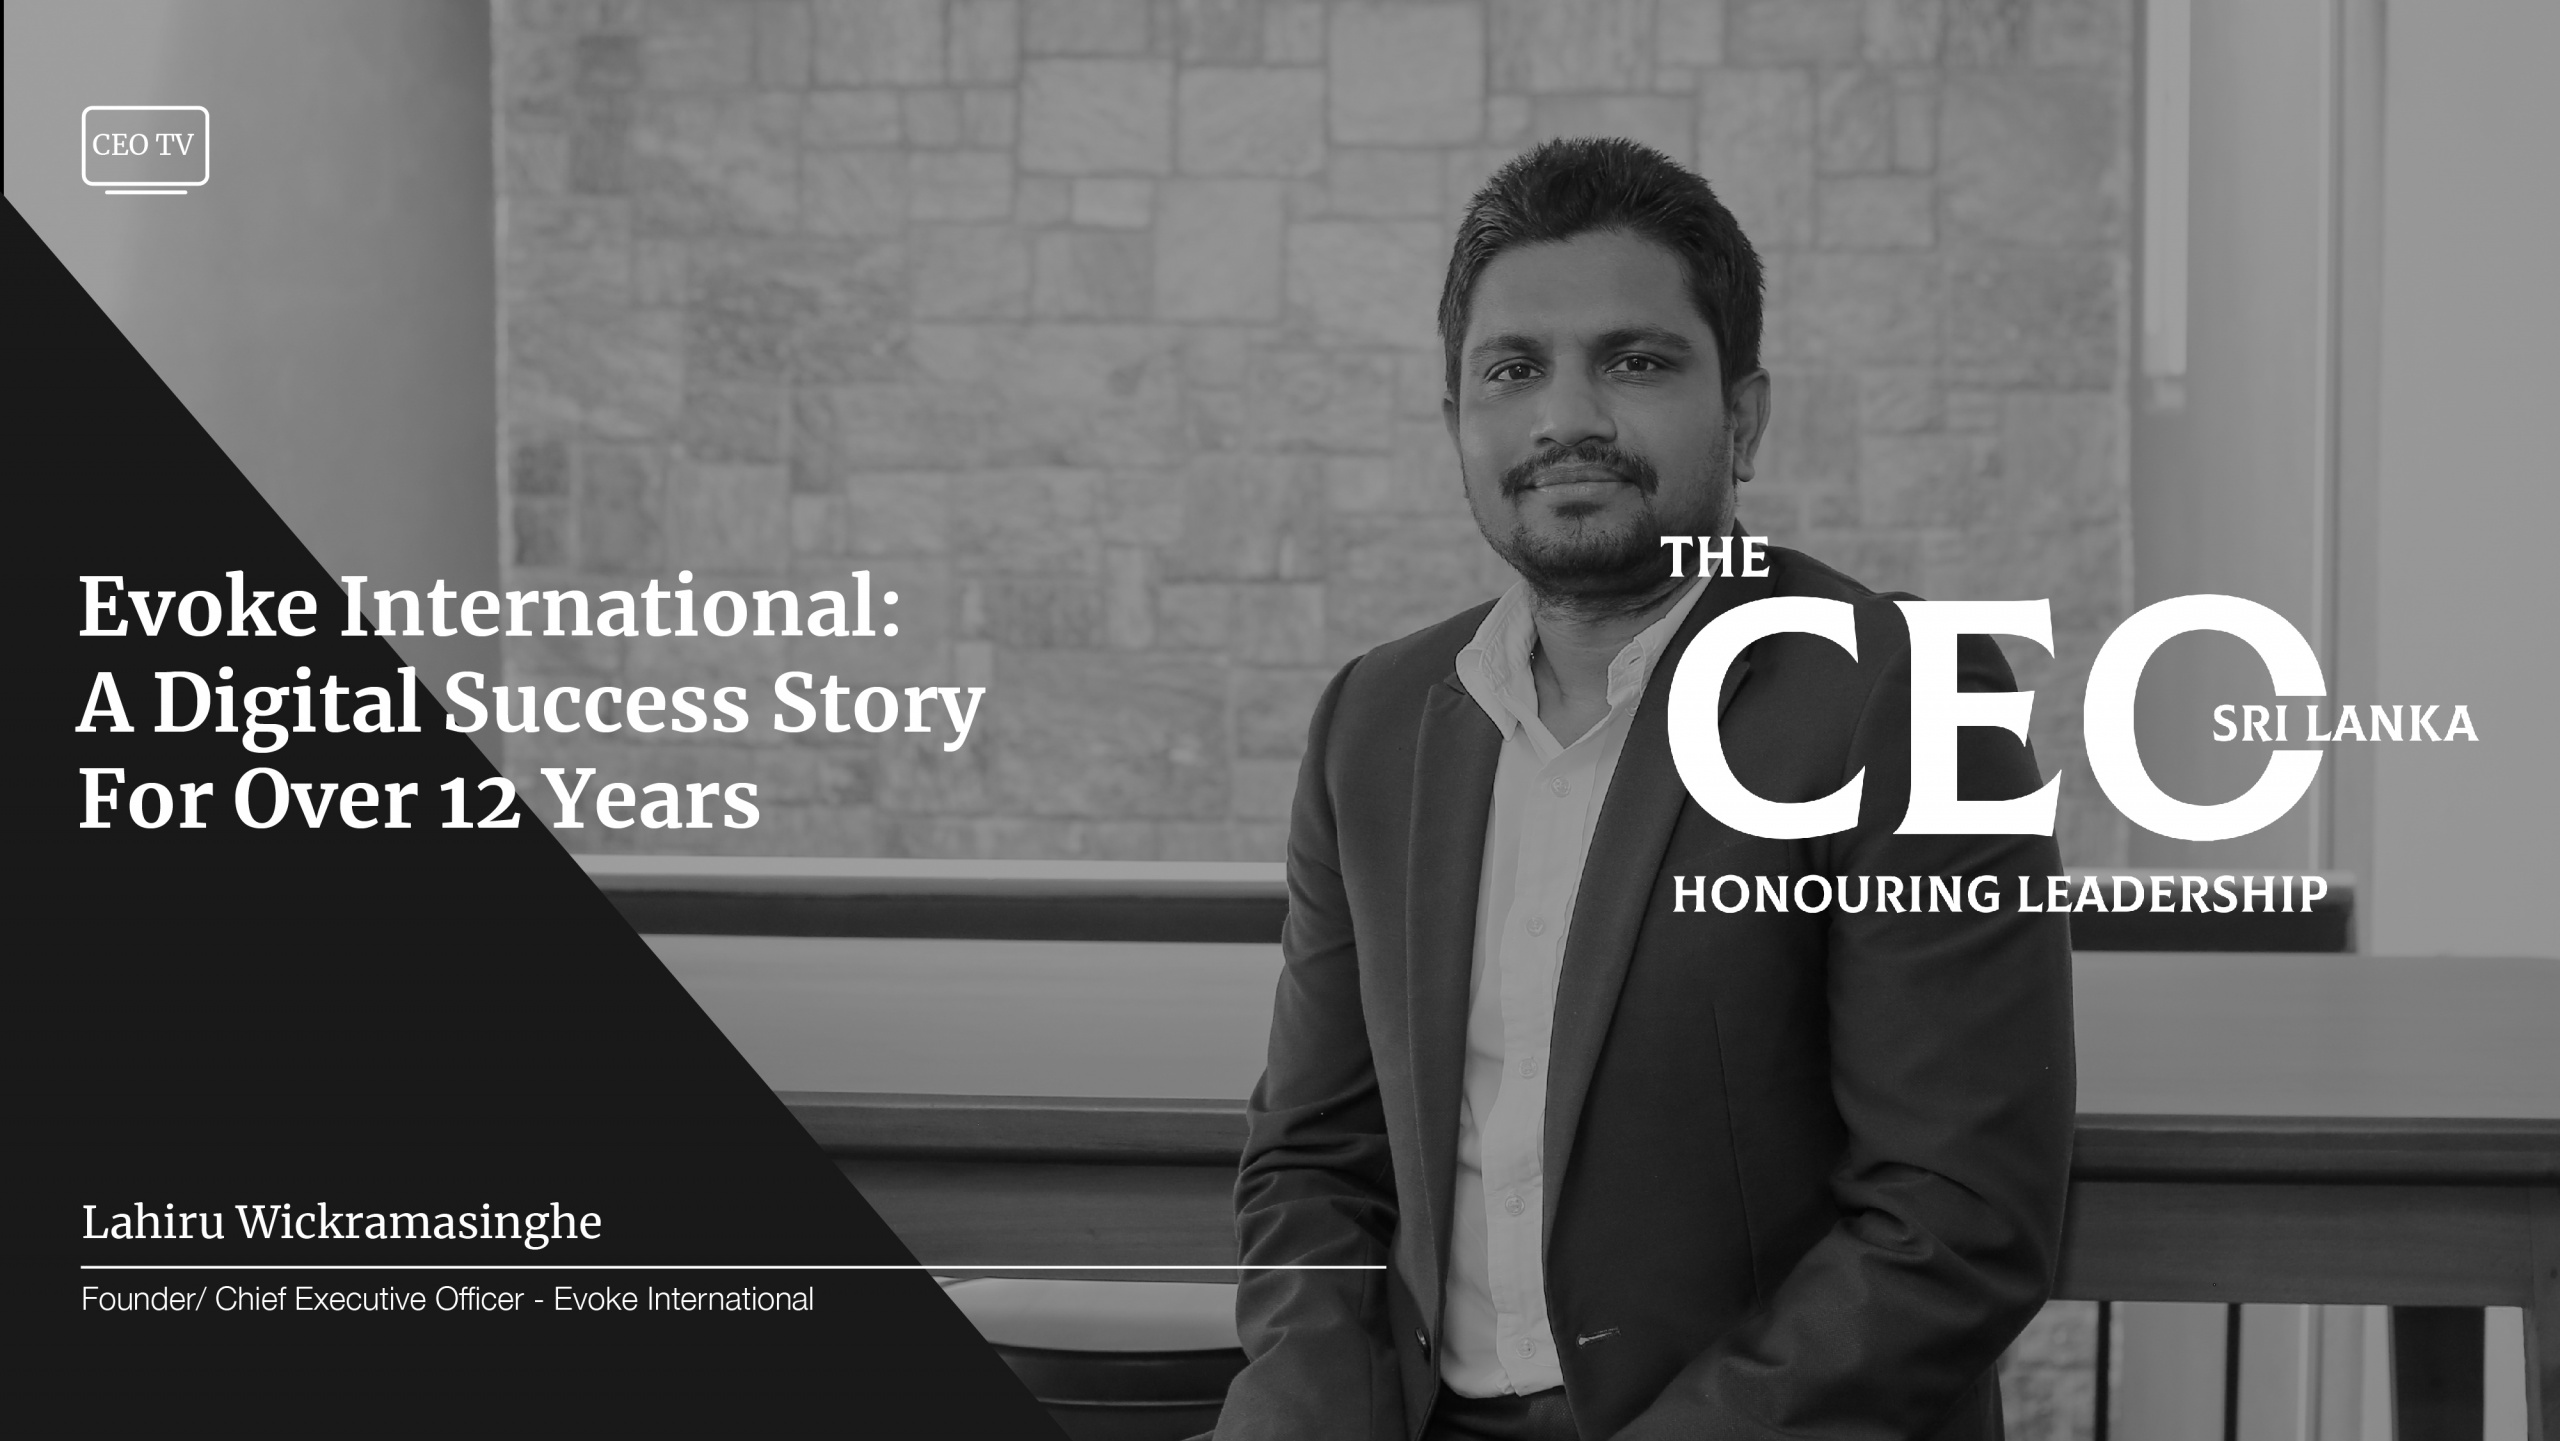 An Interview with Mr. Lahiru Wickramasinghe, the Founder & CEO of Evoke International Limited